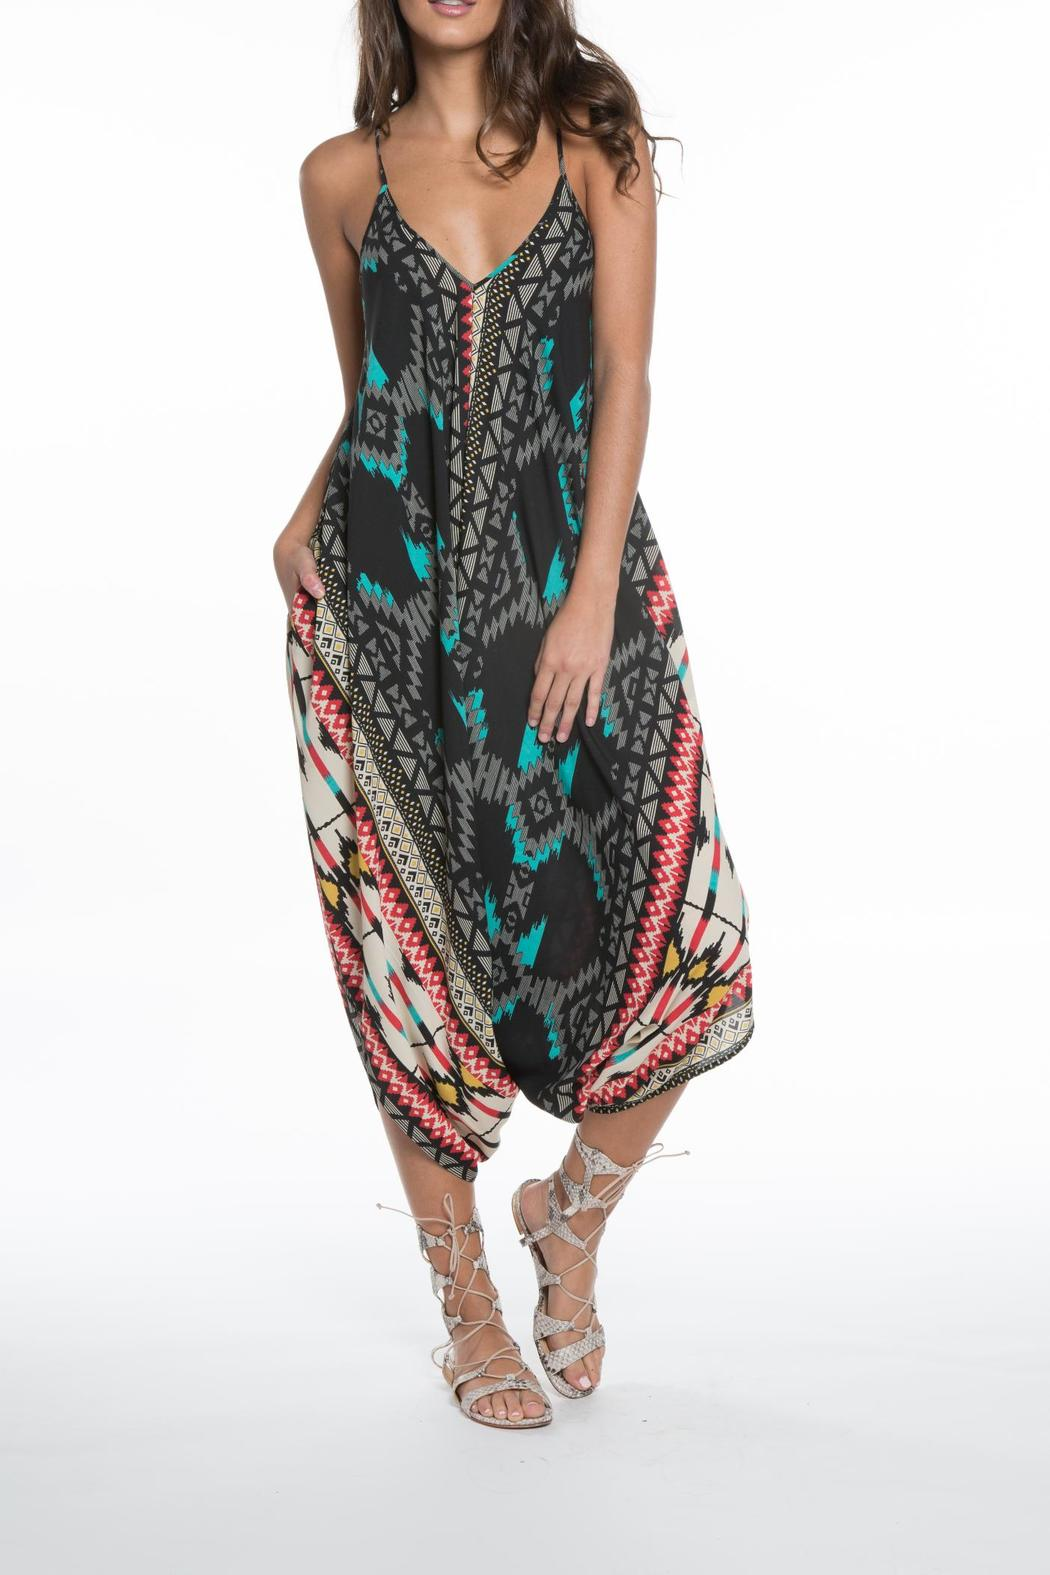 00febca748a Elan Printed Genie Jumpsuit from Miami by Allie   Chica — Shoptiques